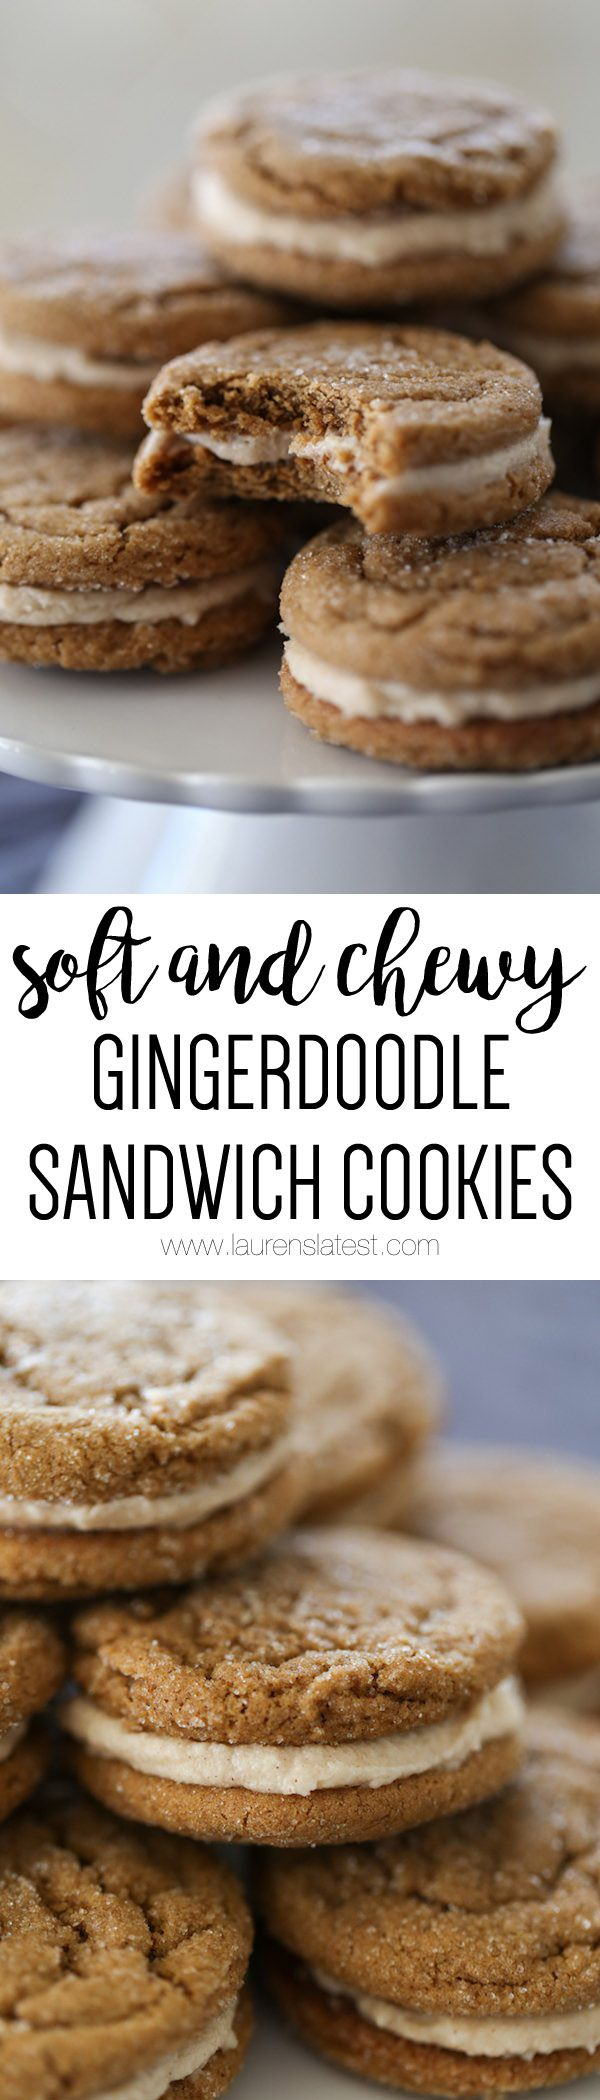 What do I like more than soft and chewy ginger cookies? STUFFED soft and chewy ginger sandwich cookies.